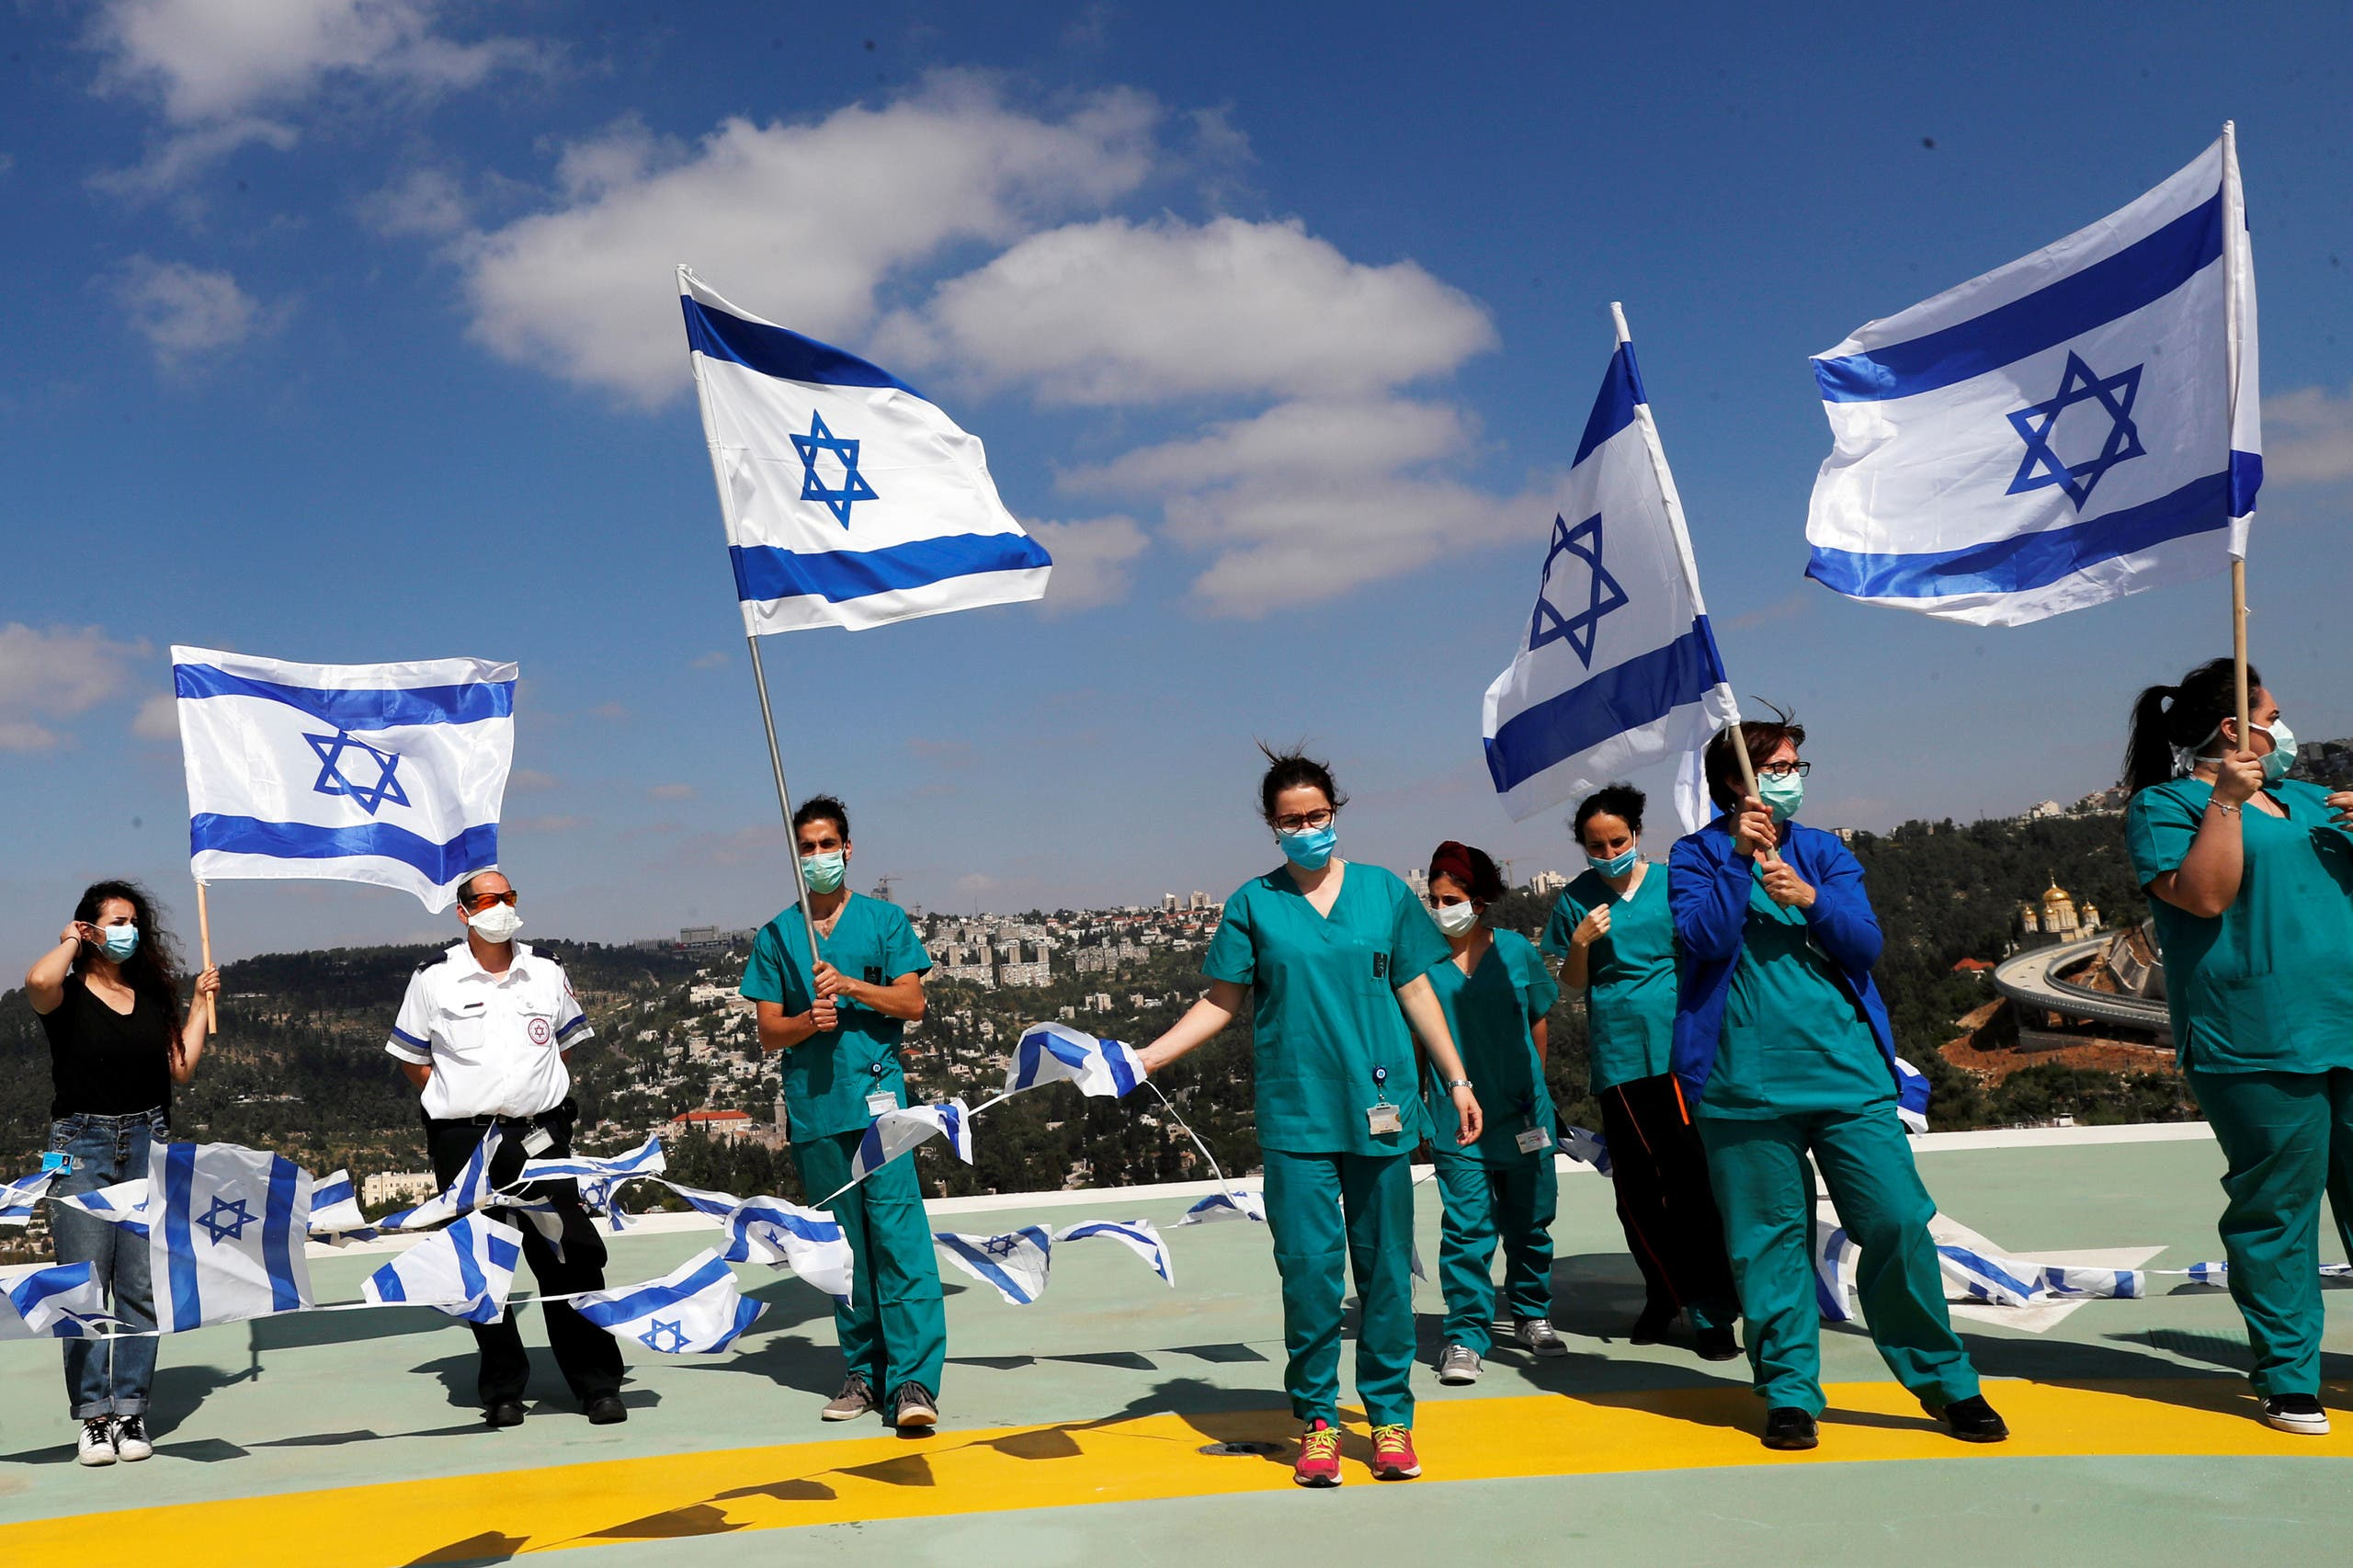 Medical staff hold Israeli national flags before a fly over by the Israeli Air Force over Hadassah Ein Kerem hospital in Jerusalem on April 29, 2020. (Reuters)